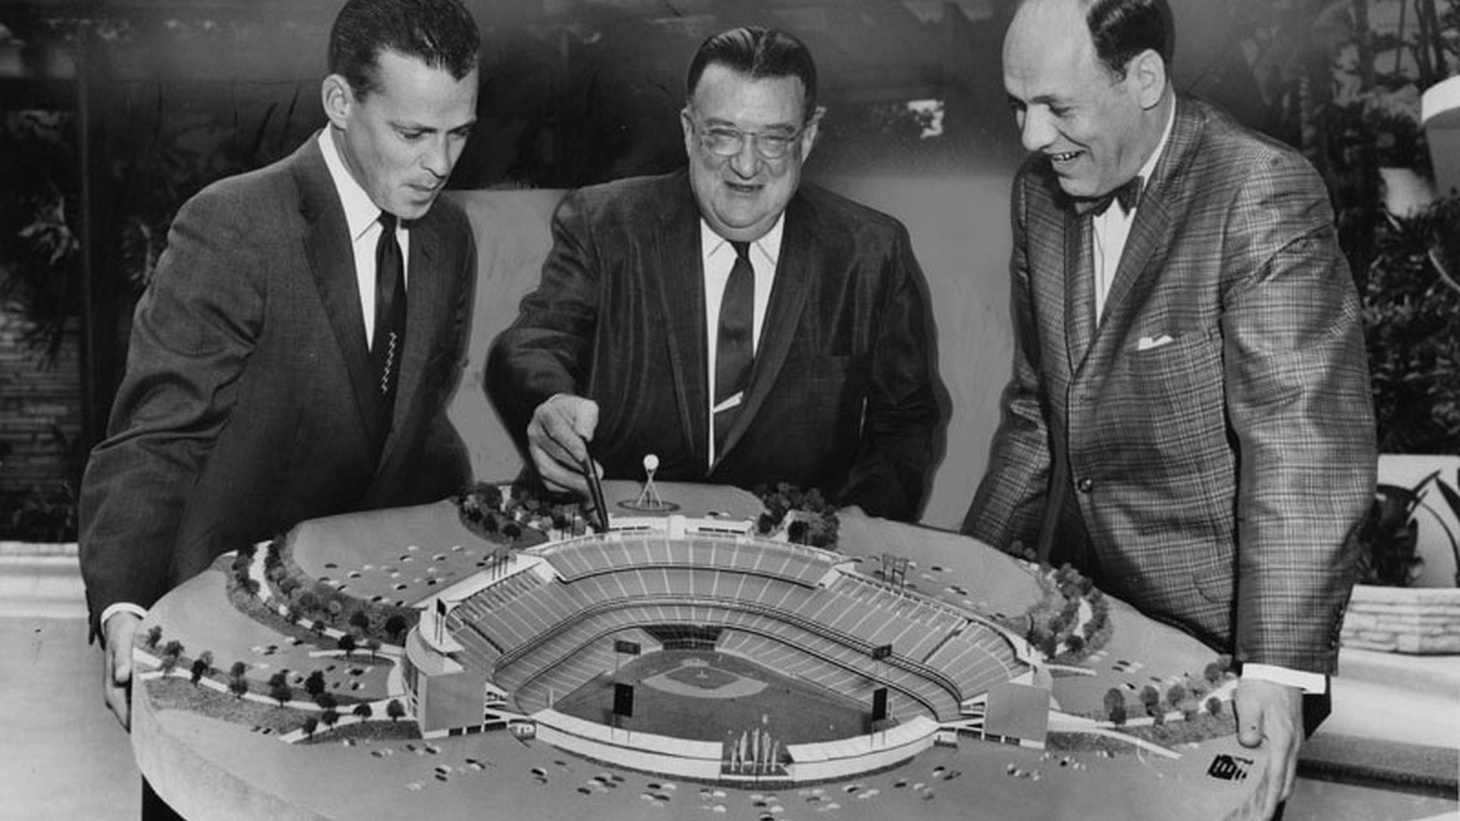 Everyone's excited about the Dodgers once again being in the World Series. But the Dodgers may have never left Brooklyn 60 years ago if it wasn't for a deal hatched between city officials and a real estate businessman to turn Chavez Ravine into a baseball field.